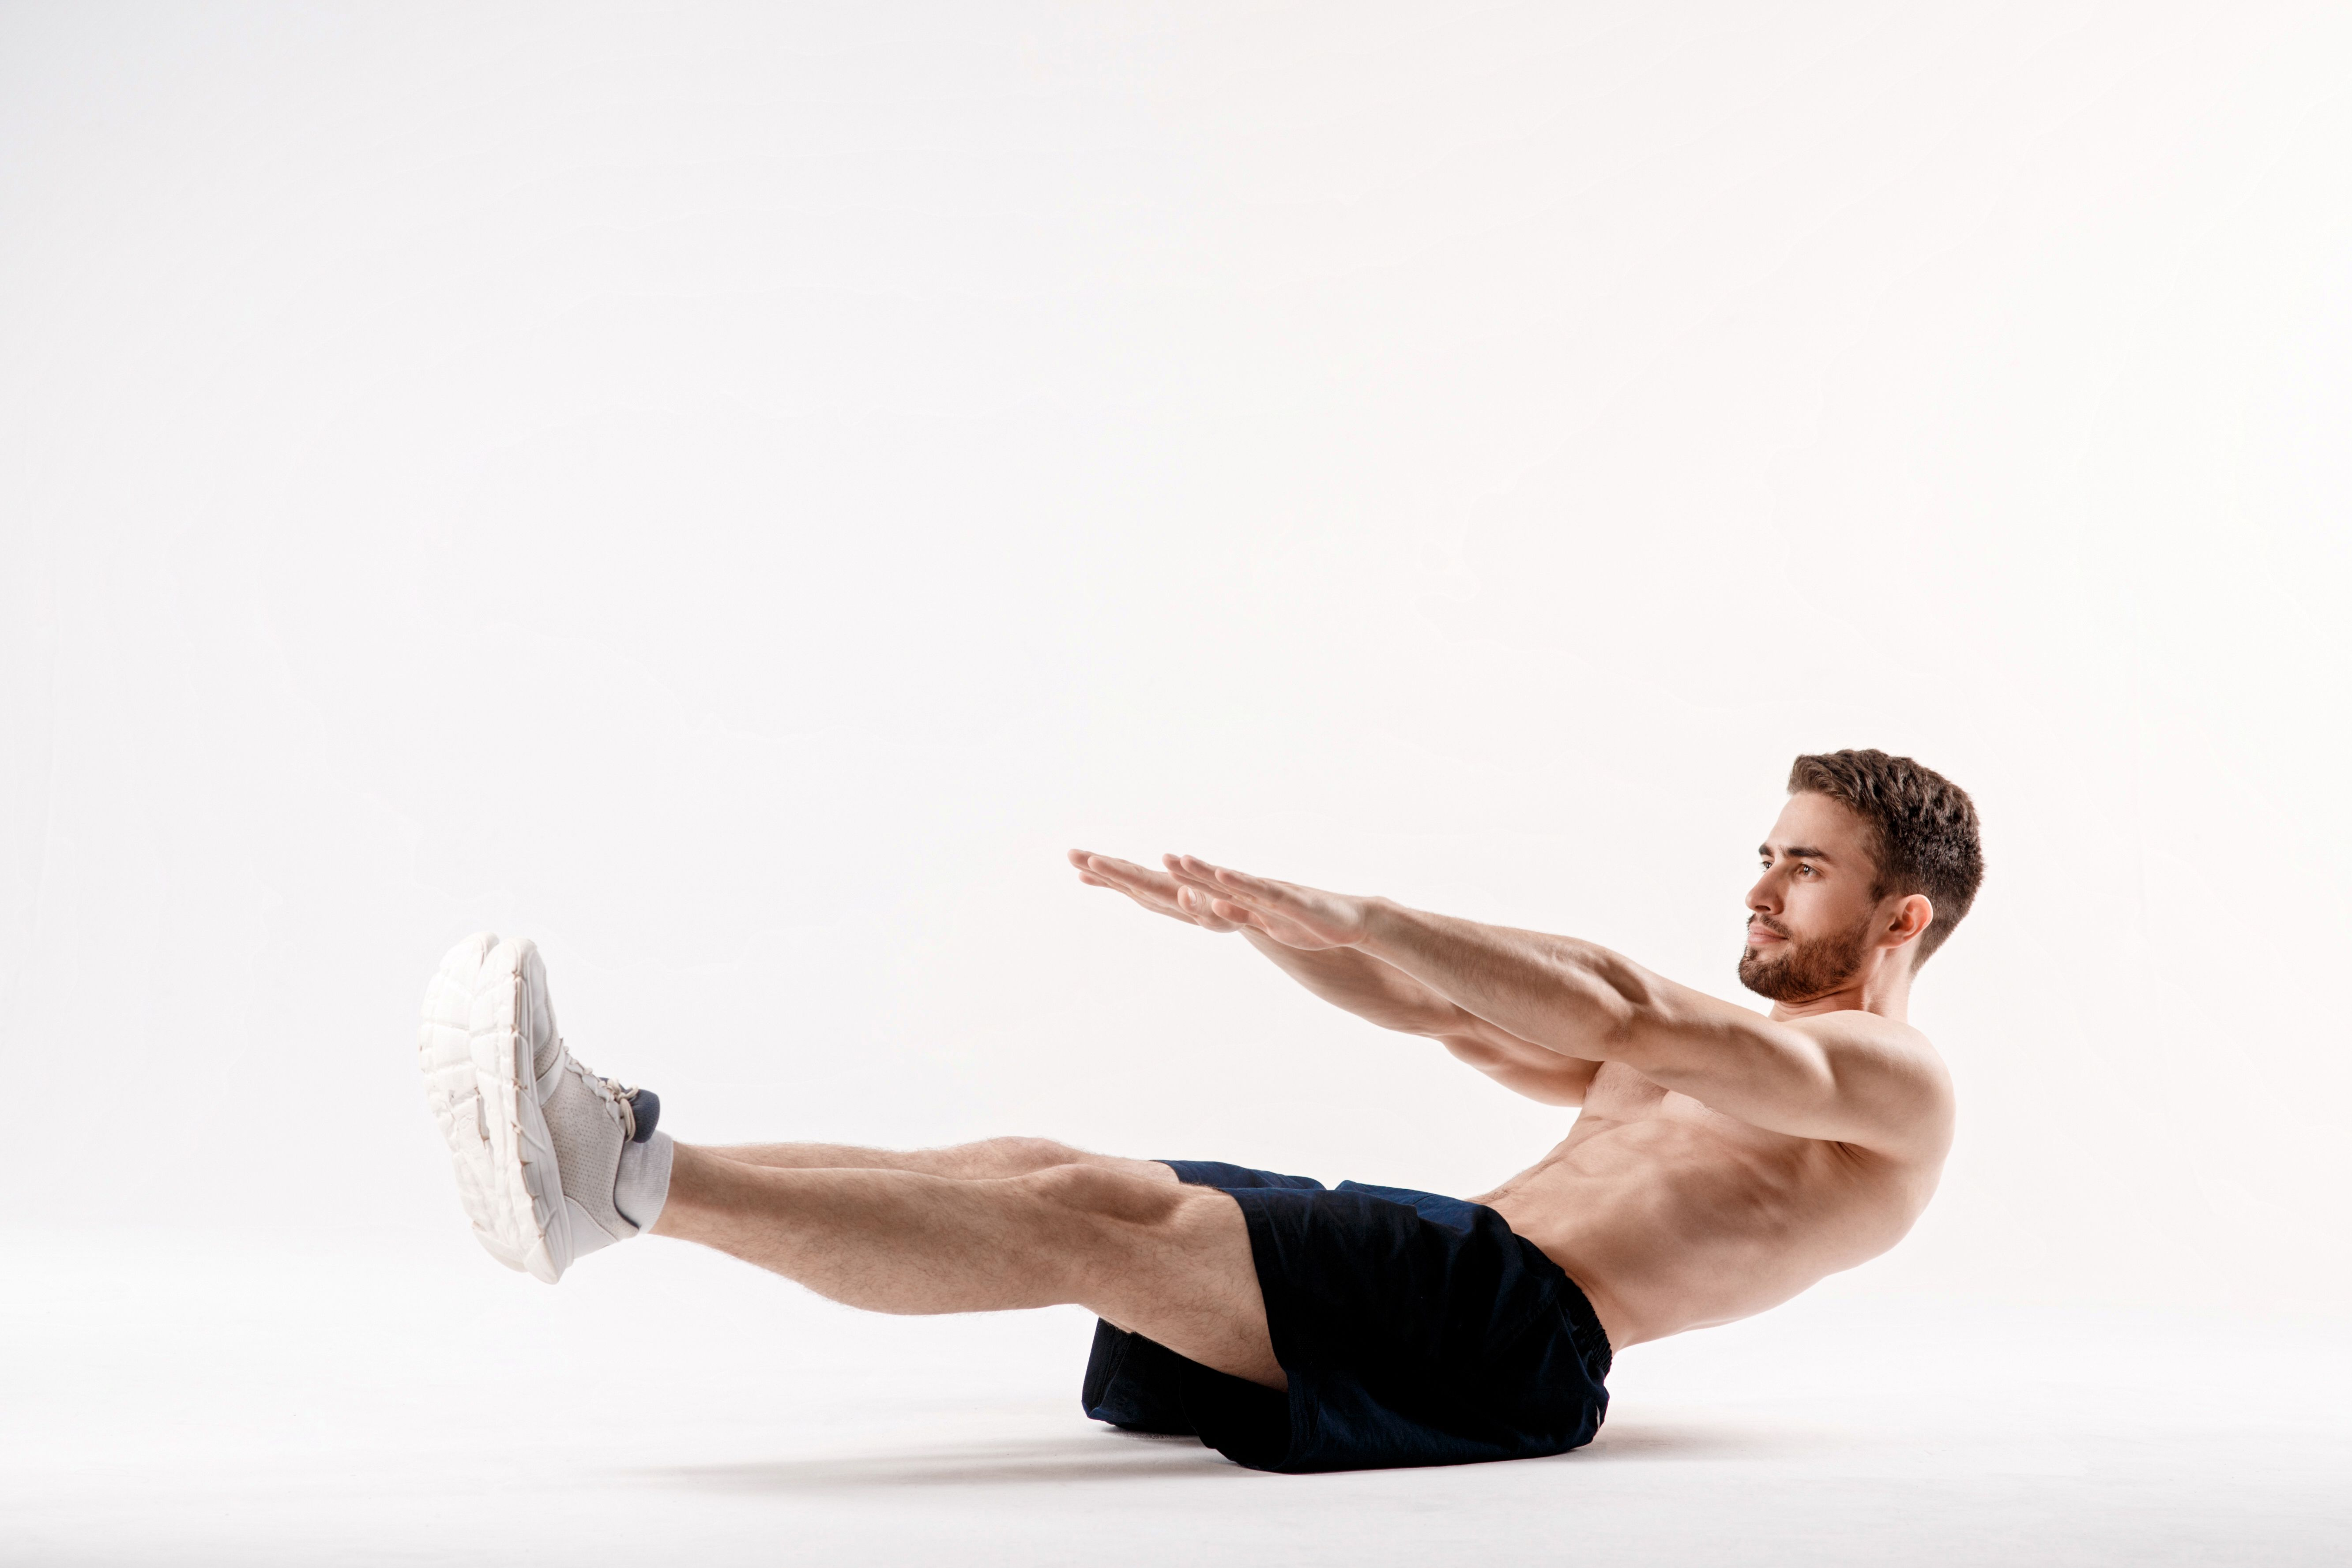 Build Rippling Abs at Home with This Simple Six-pack Circuit